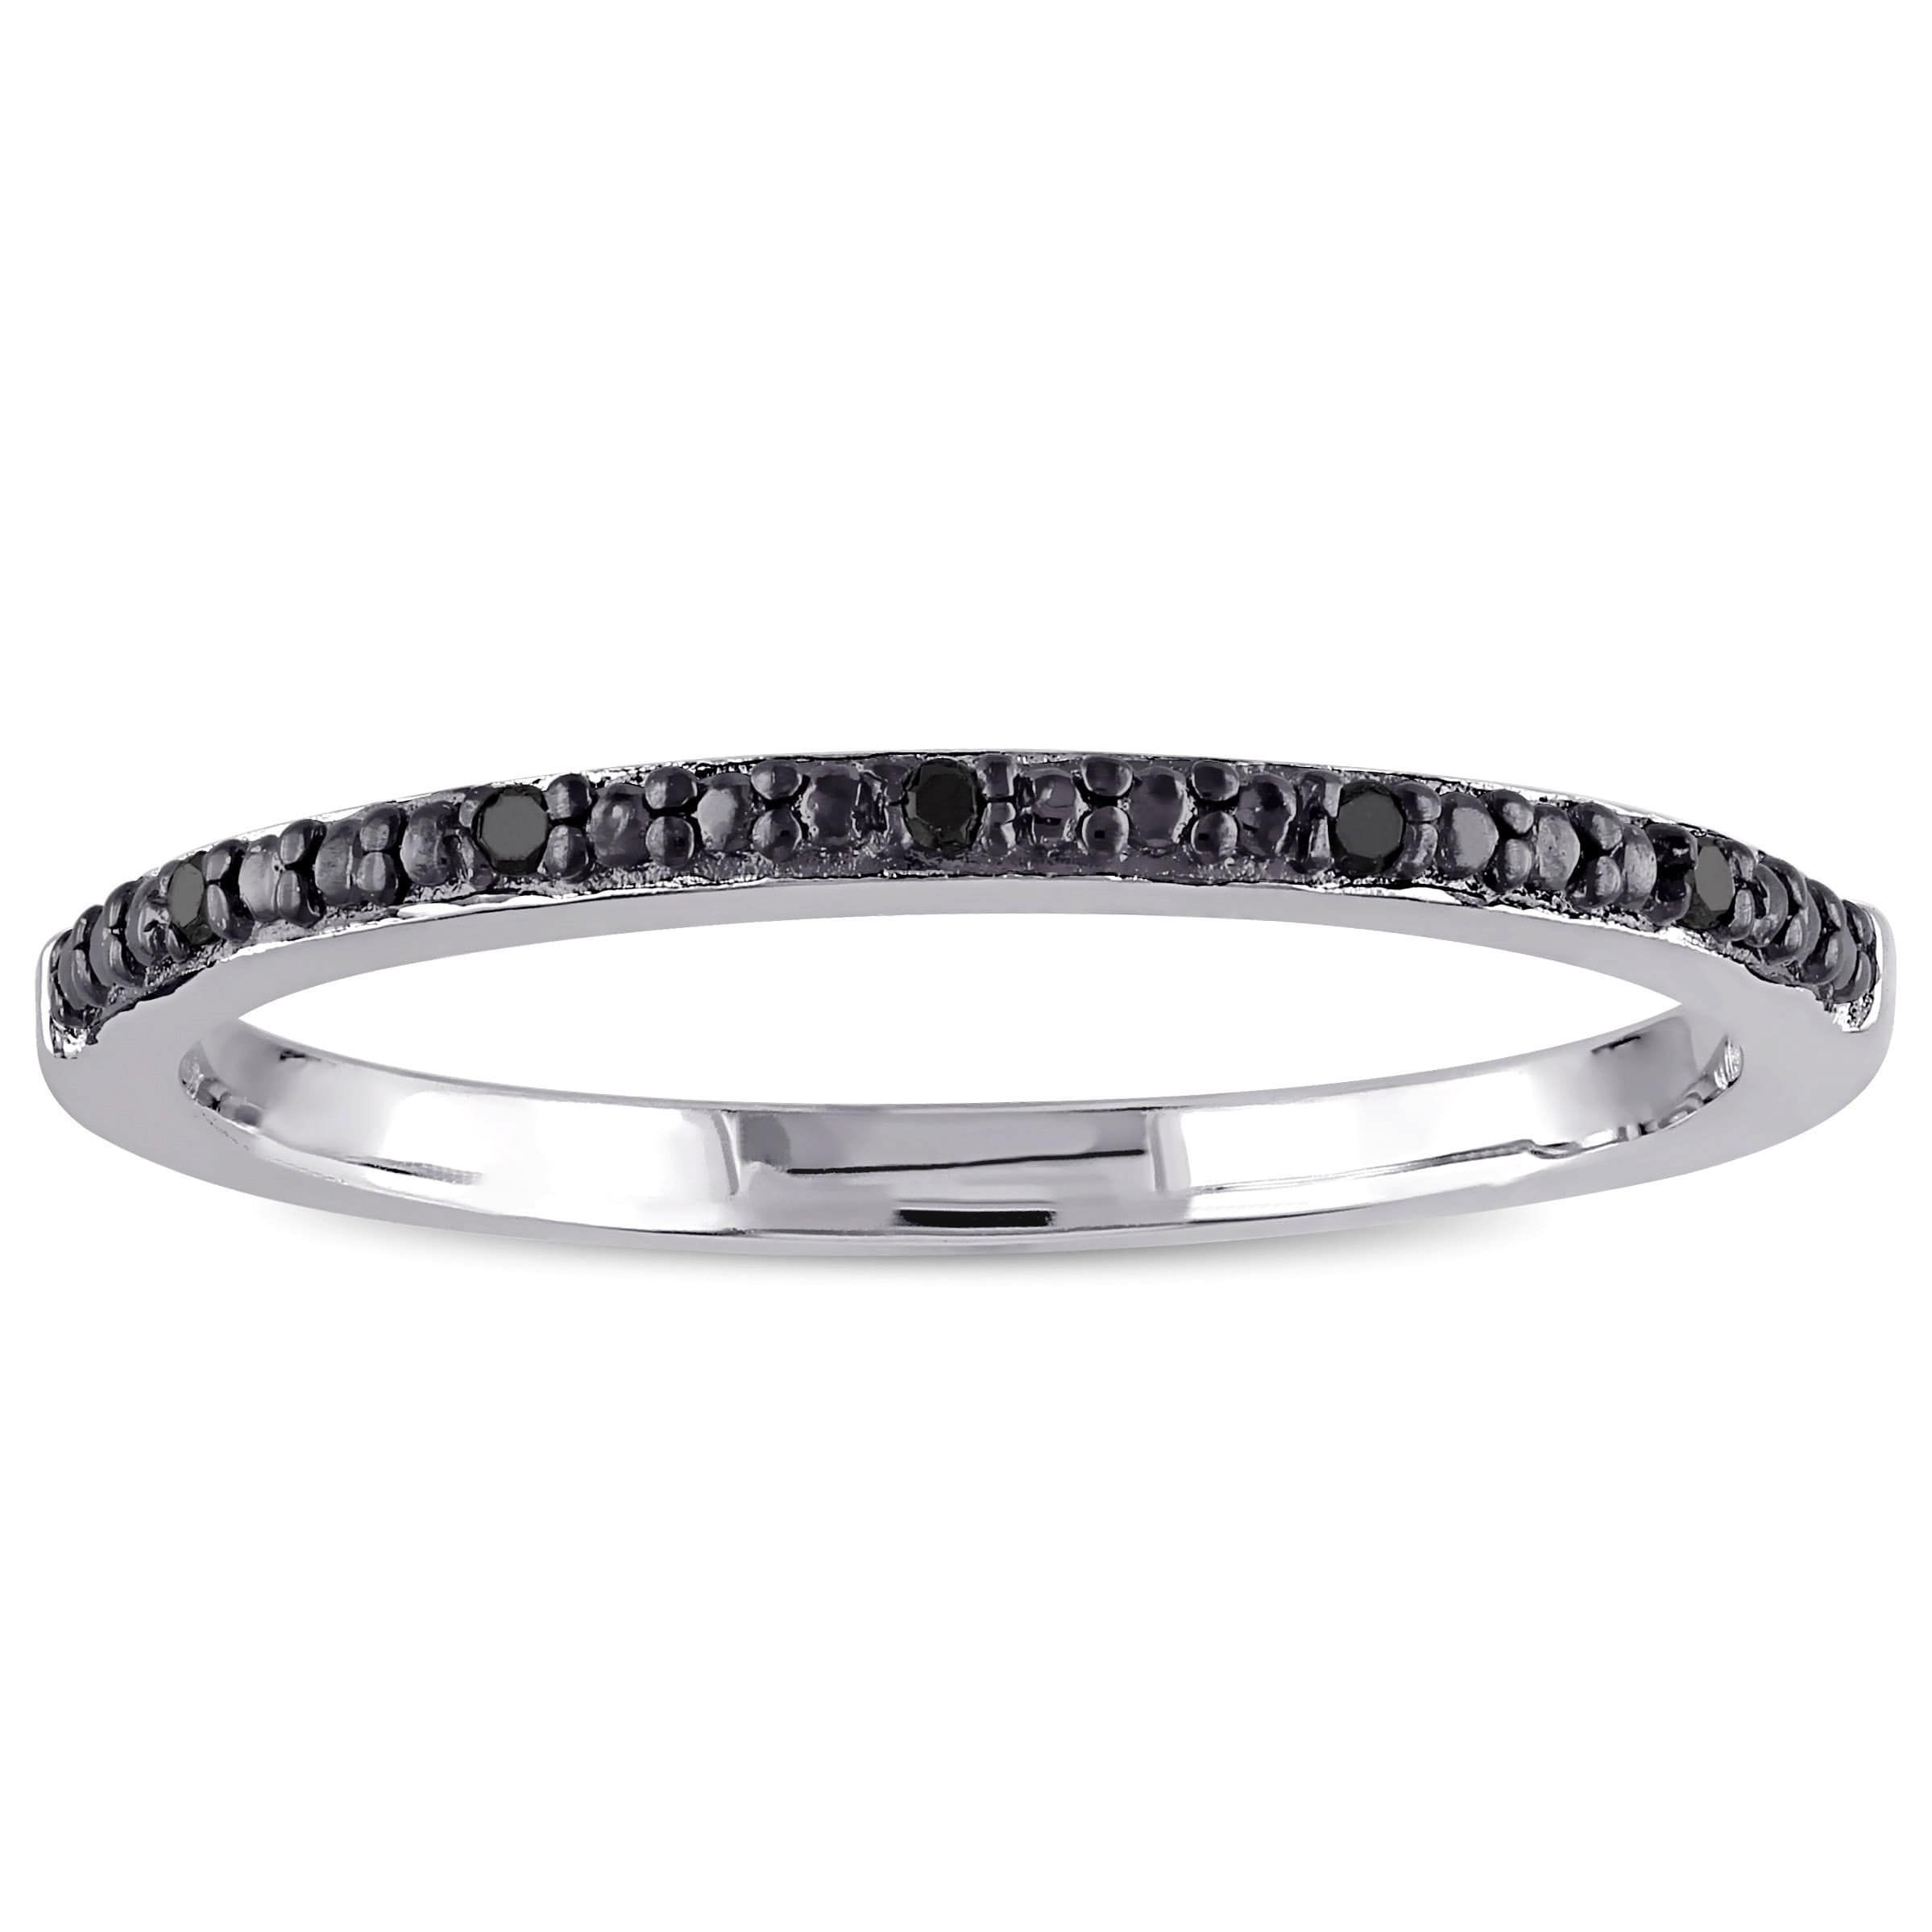 Miadora Sterling Silver Black Diamond Accent Wedding Band Intended For Most Popular Diamond Accent Anniversary Bands In Sterling Silver (View 11 of 25)